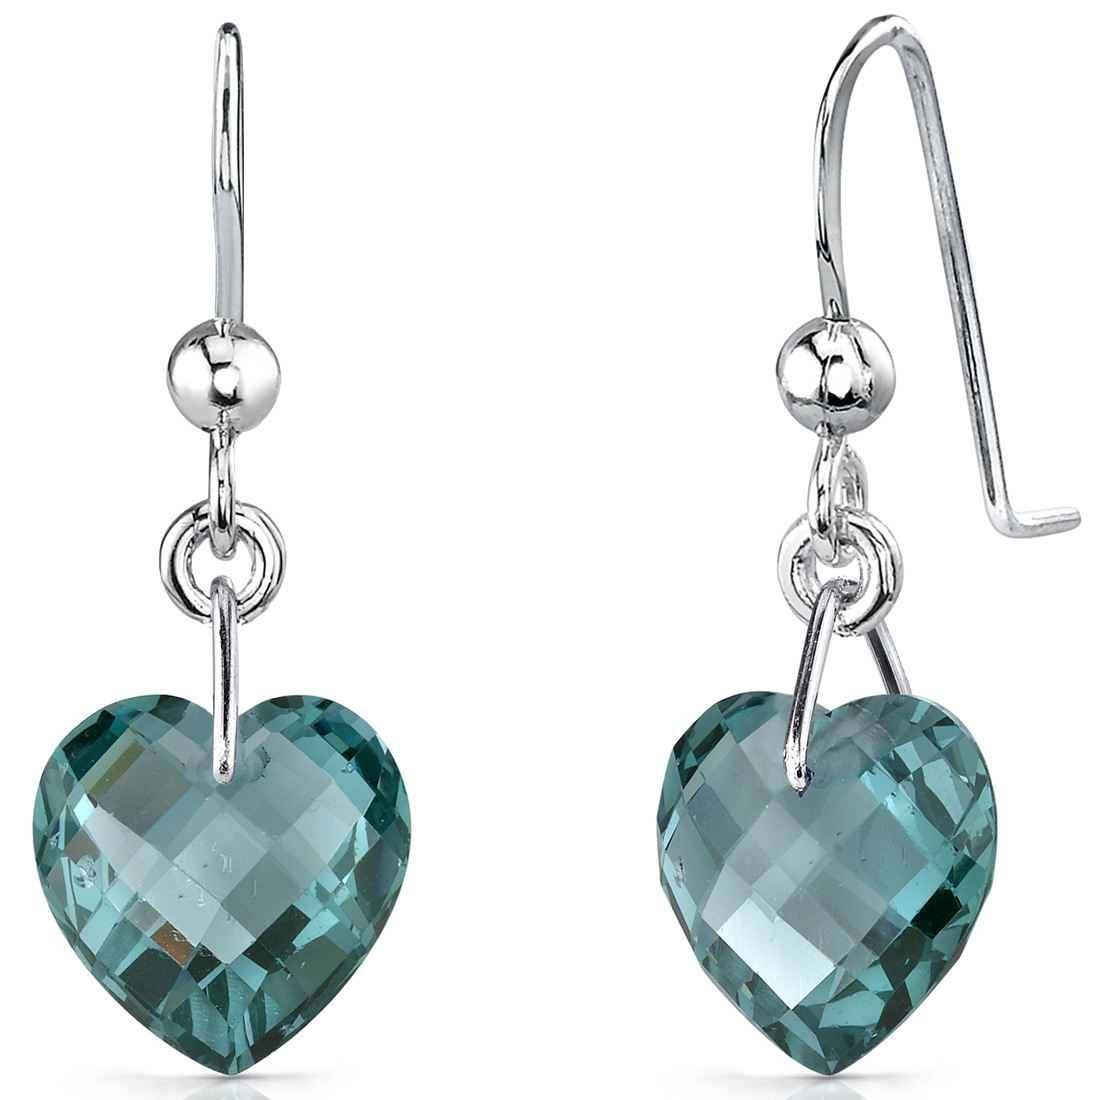 Peora 9.50 Ct Heart Shape Green Sapphire Sterling Silver Drop Earrings Rhodium Finish